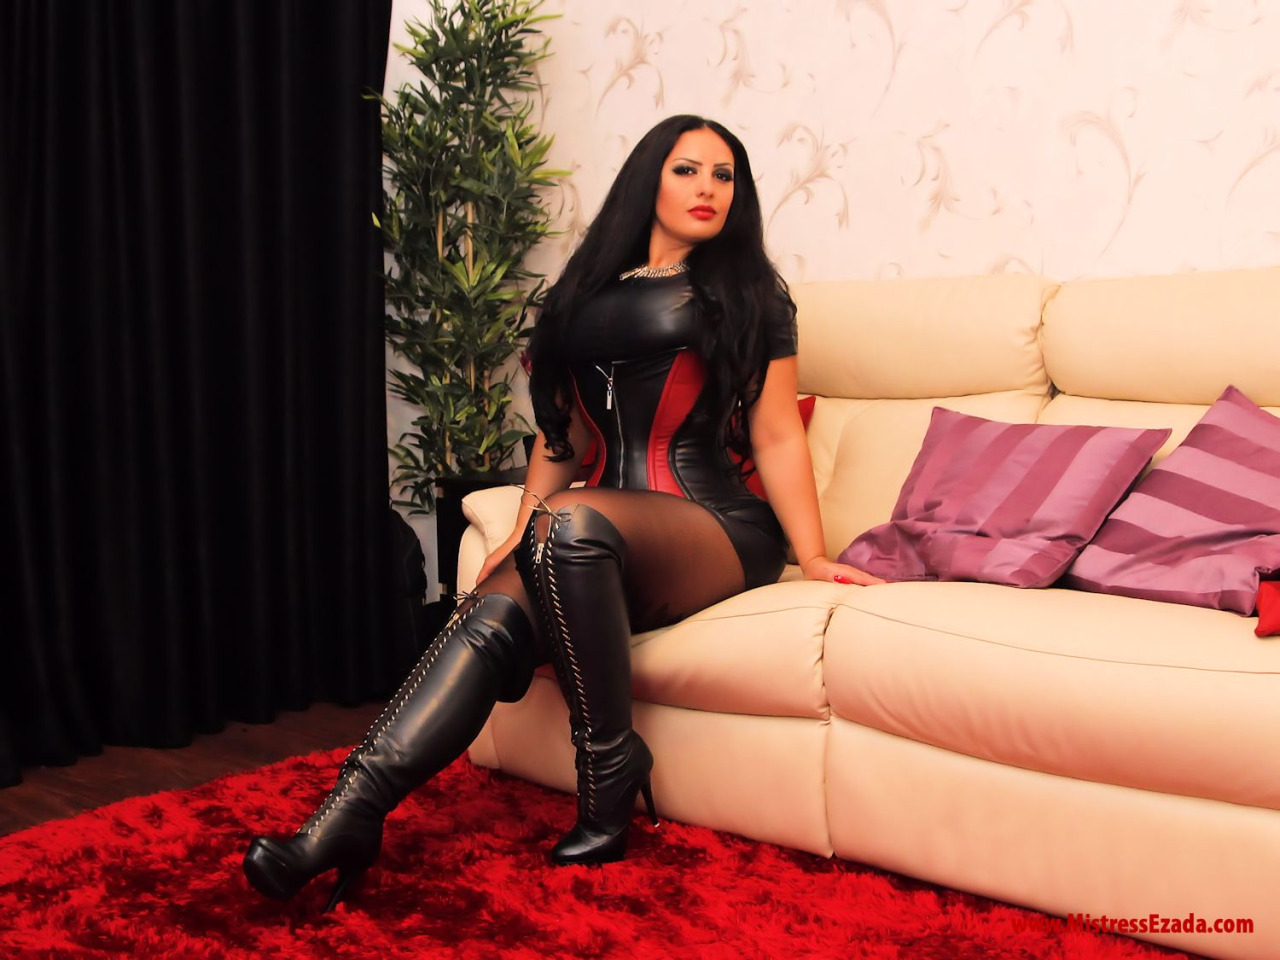 cbt fetish escort germany